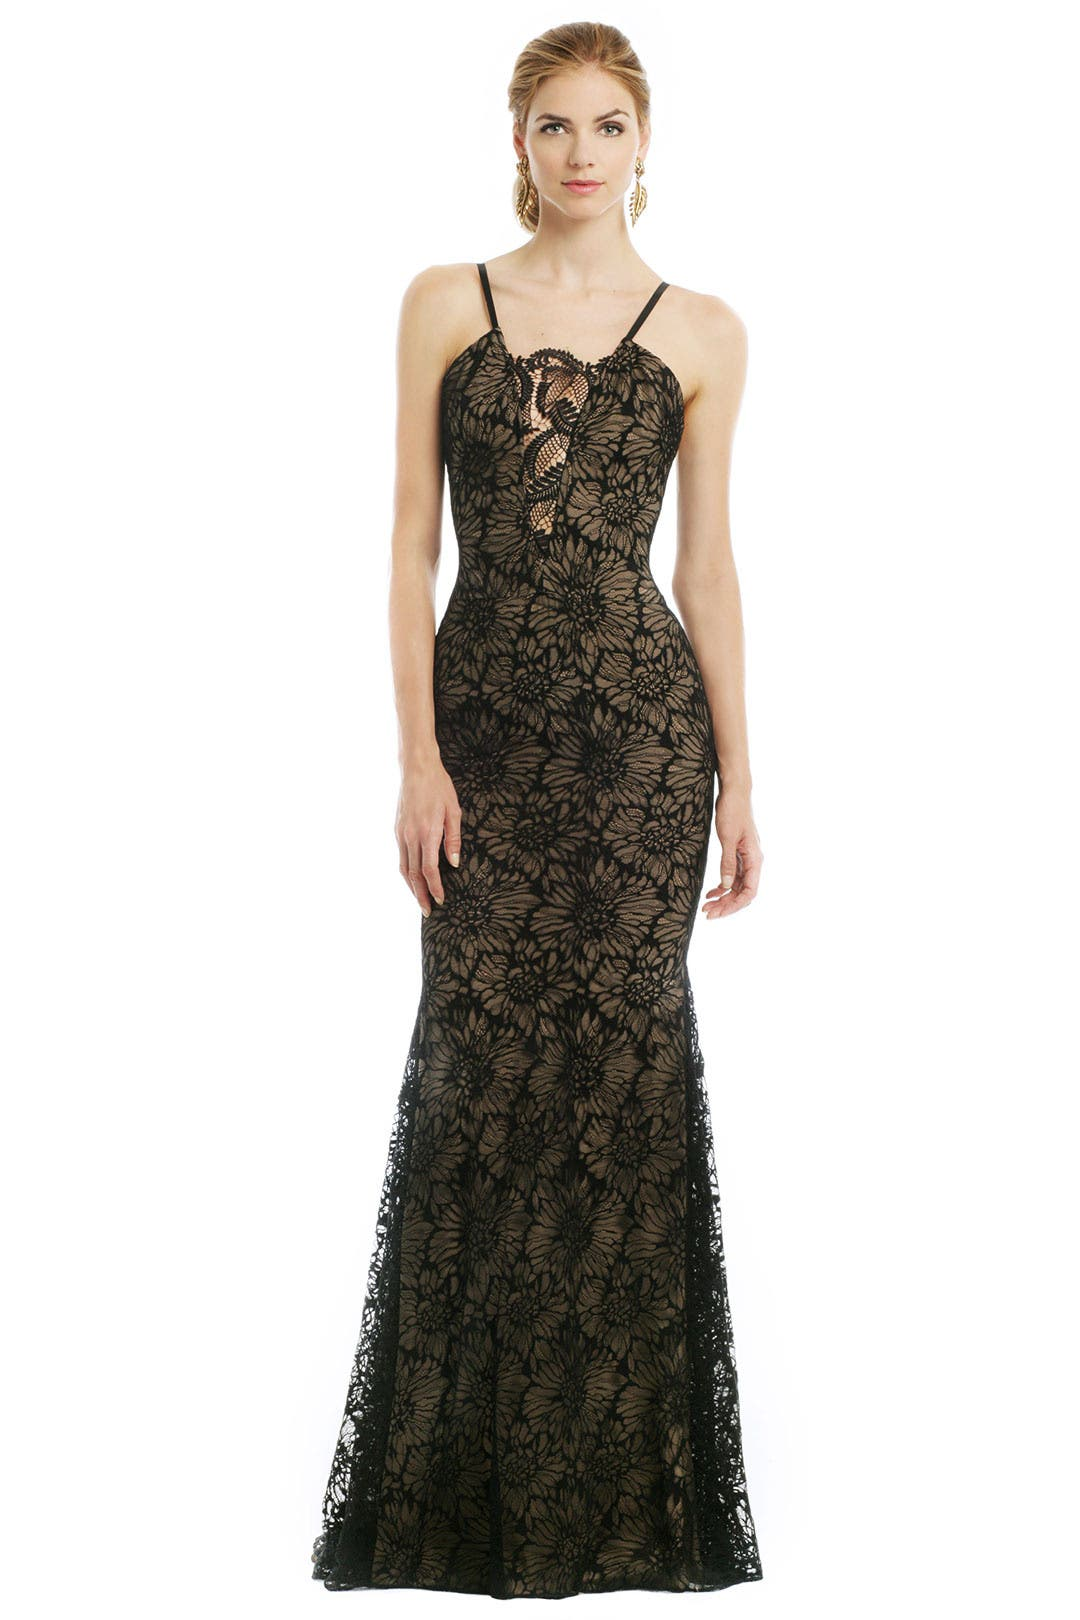 Noir Daffodil Gown by Vera Wang for $50 - $95 - Rent the Runway